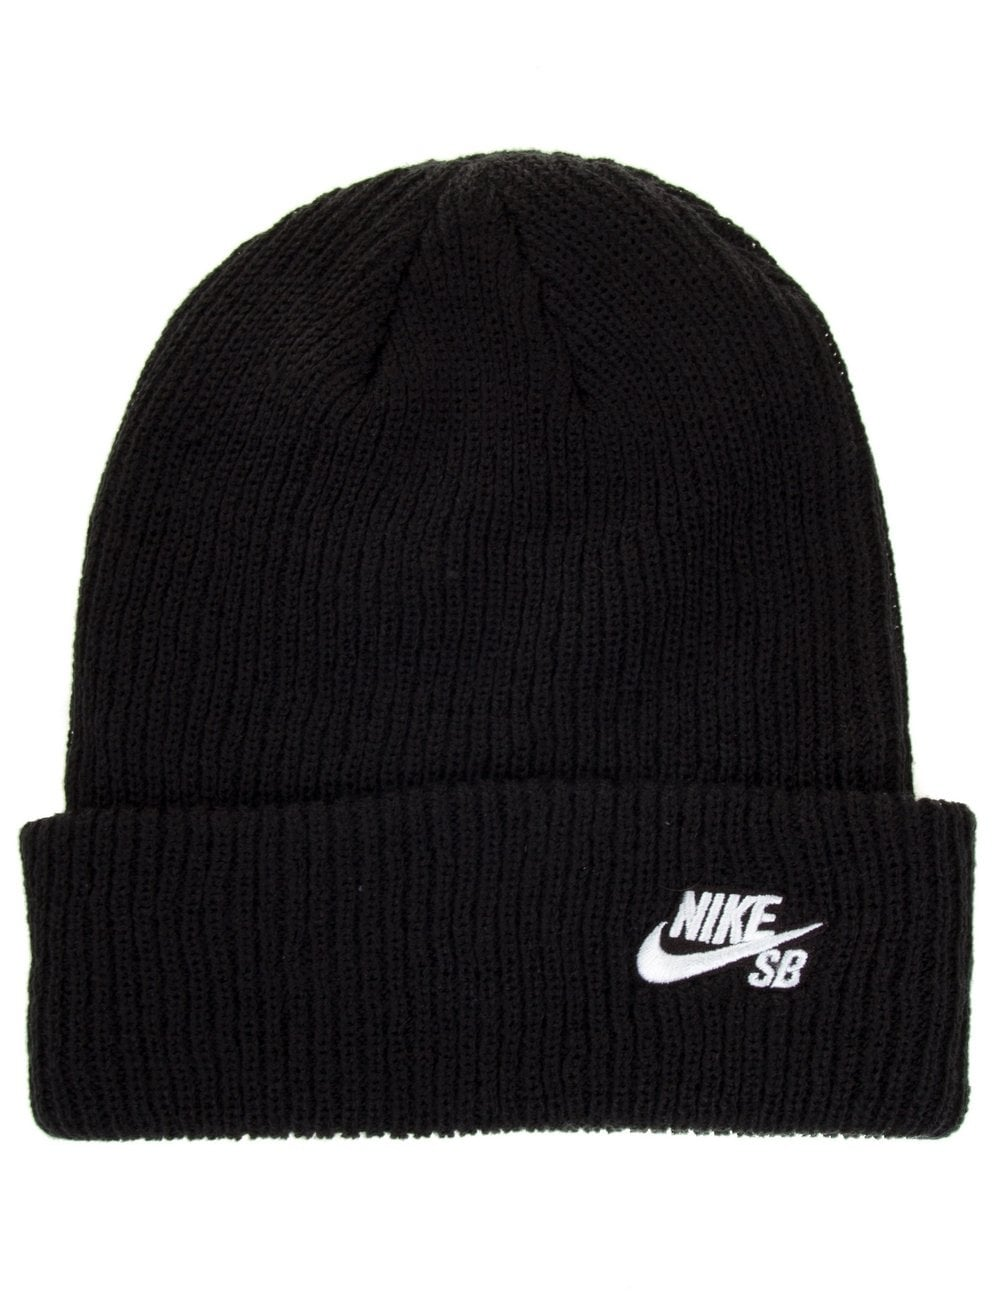 Nike SB Fisherman Beanie - Black - Accessories from Fat Buddha Store UK bae54a0d58c